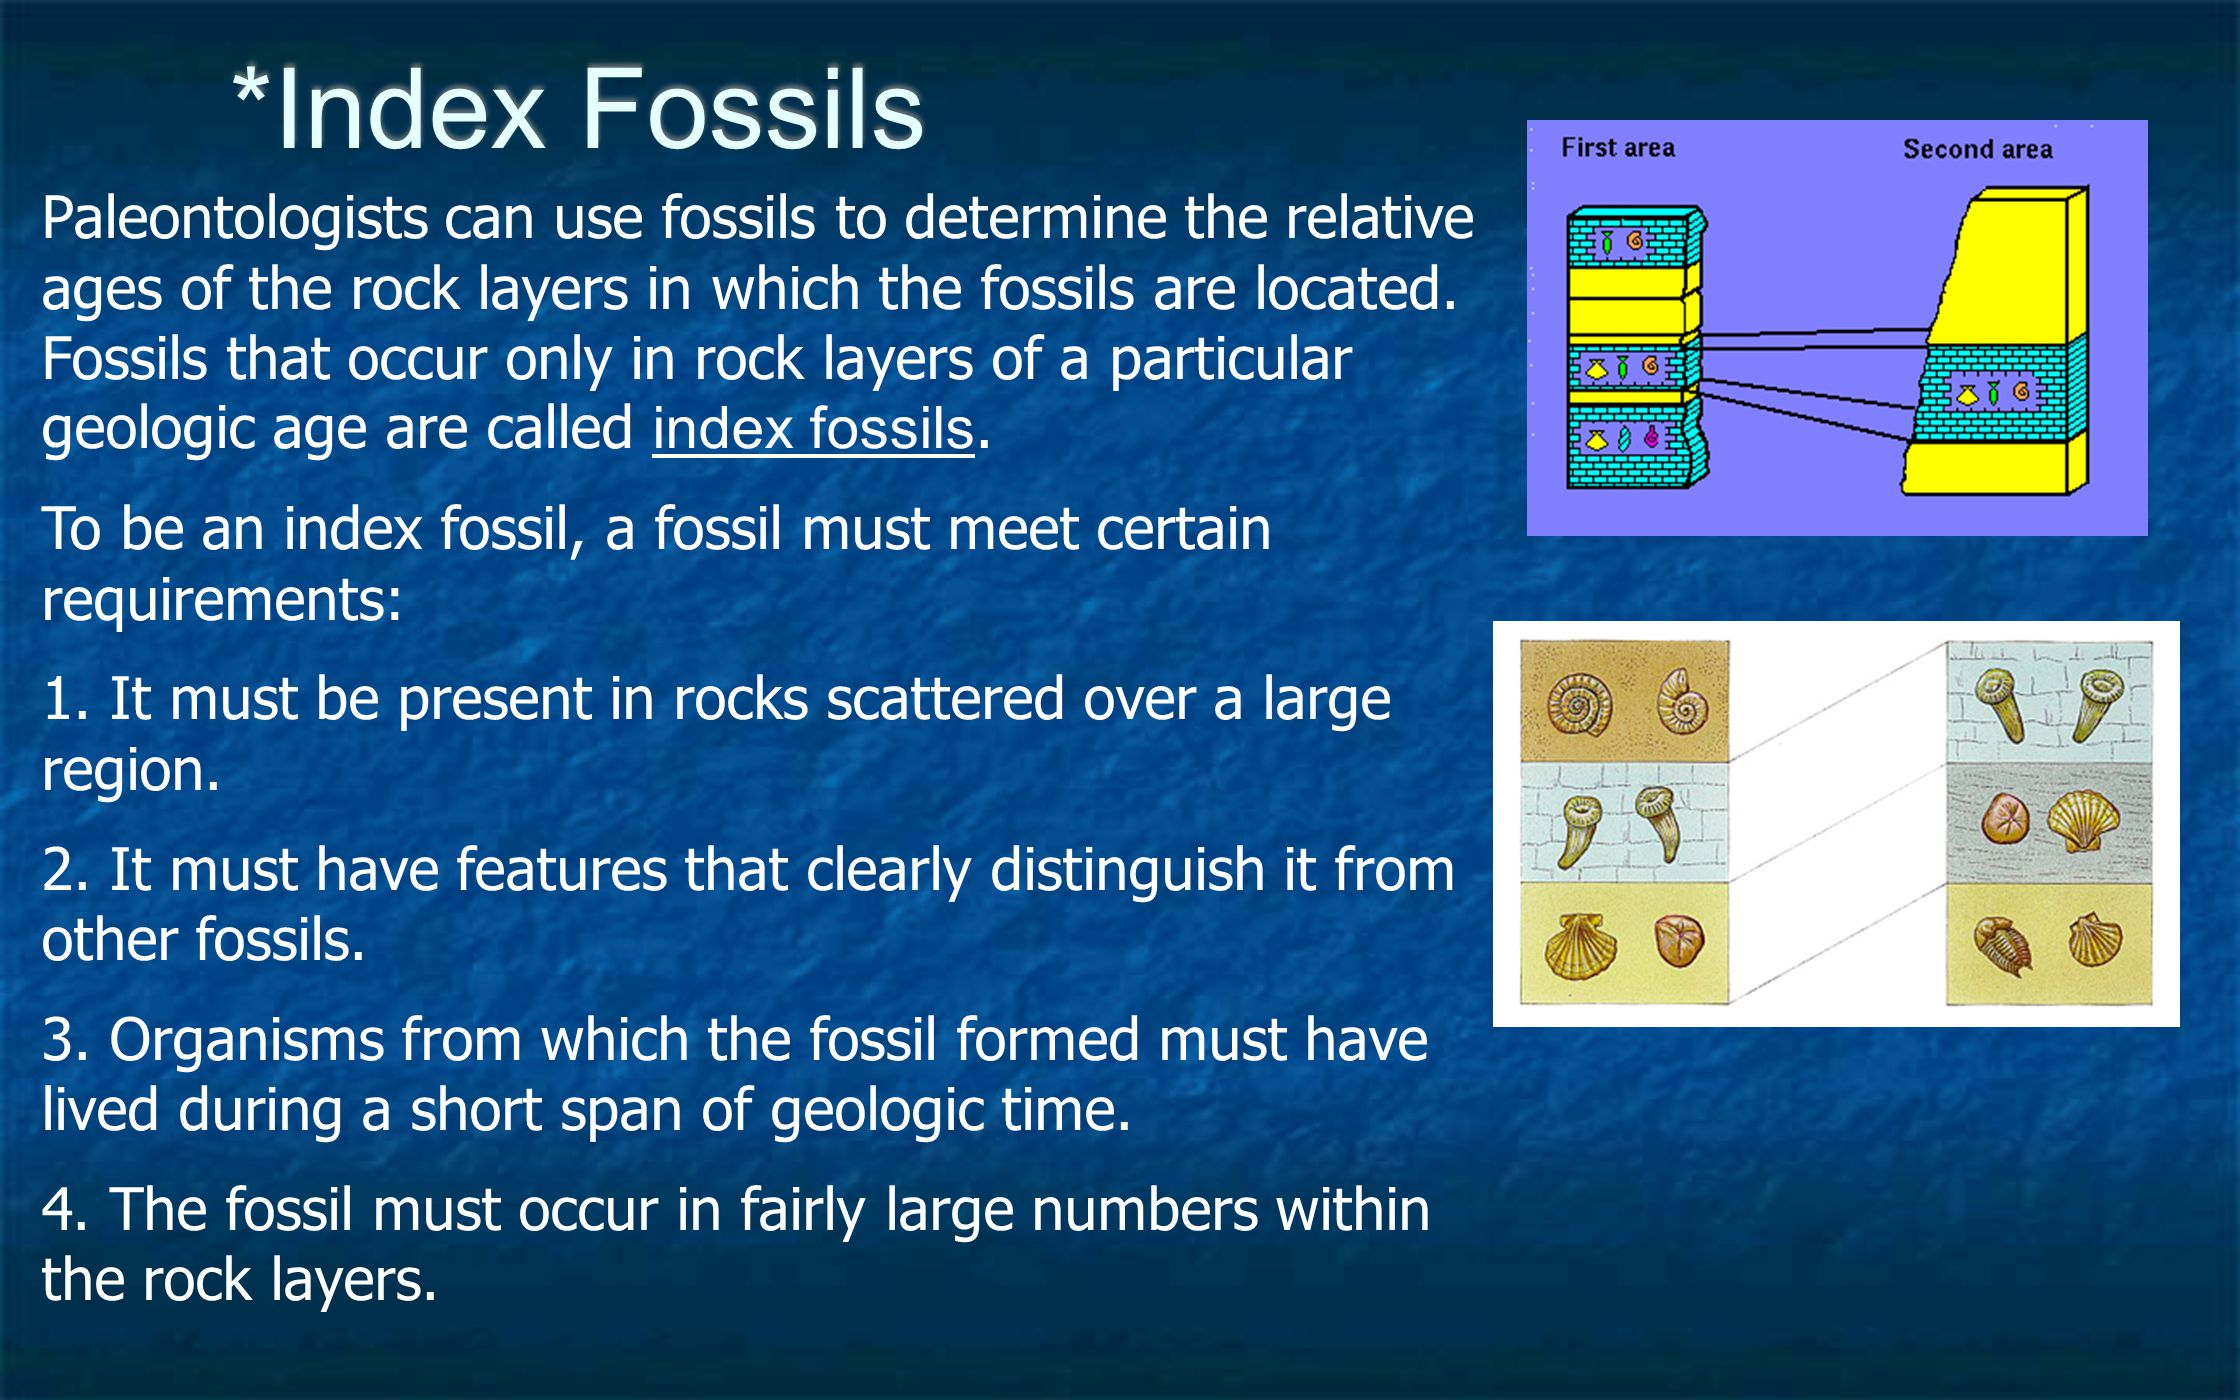 Analogy of methods for dating rock and fossils used by paleontologists